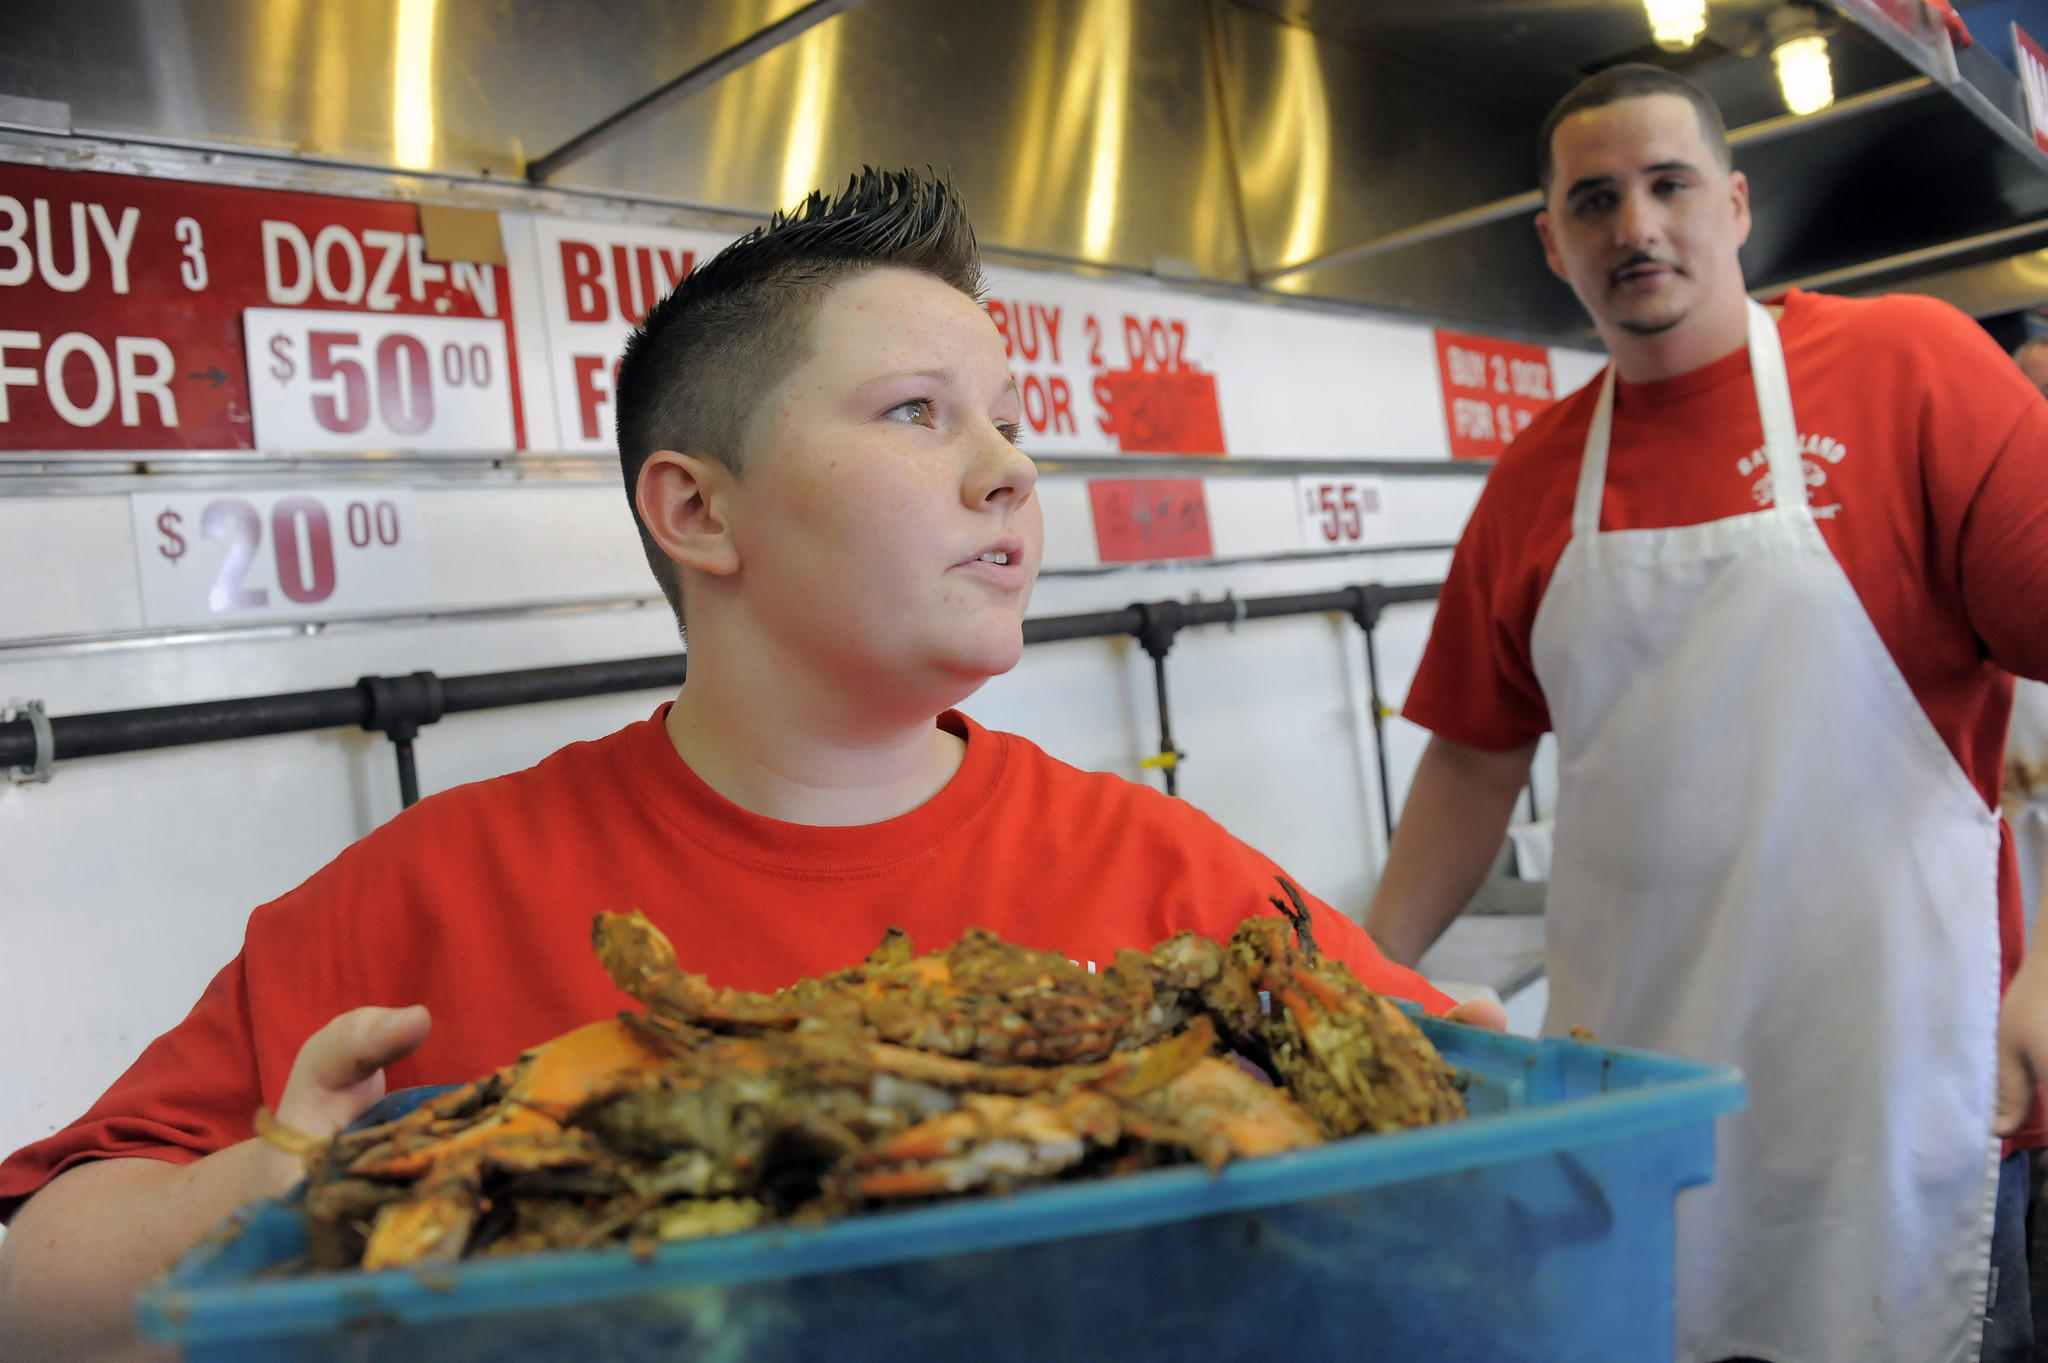 Bay Island crab house employee Michael Rickell looks at Courtney Green, who prepares to show a waiting customer the size of steamed crabs for sale Friday.